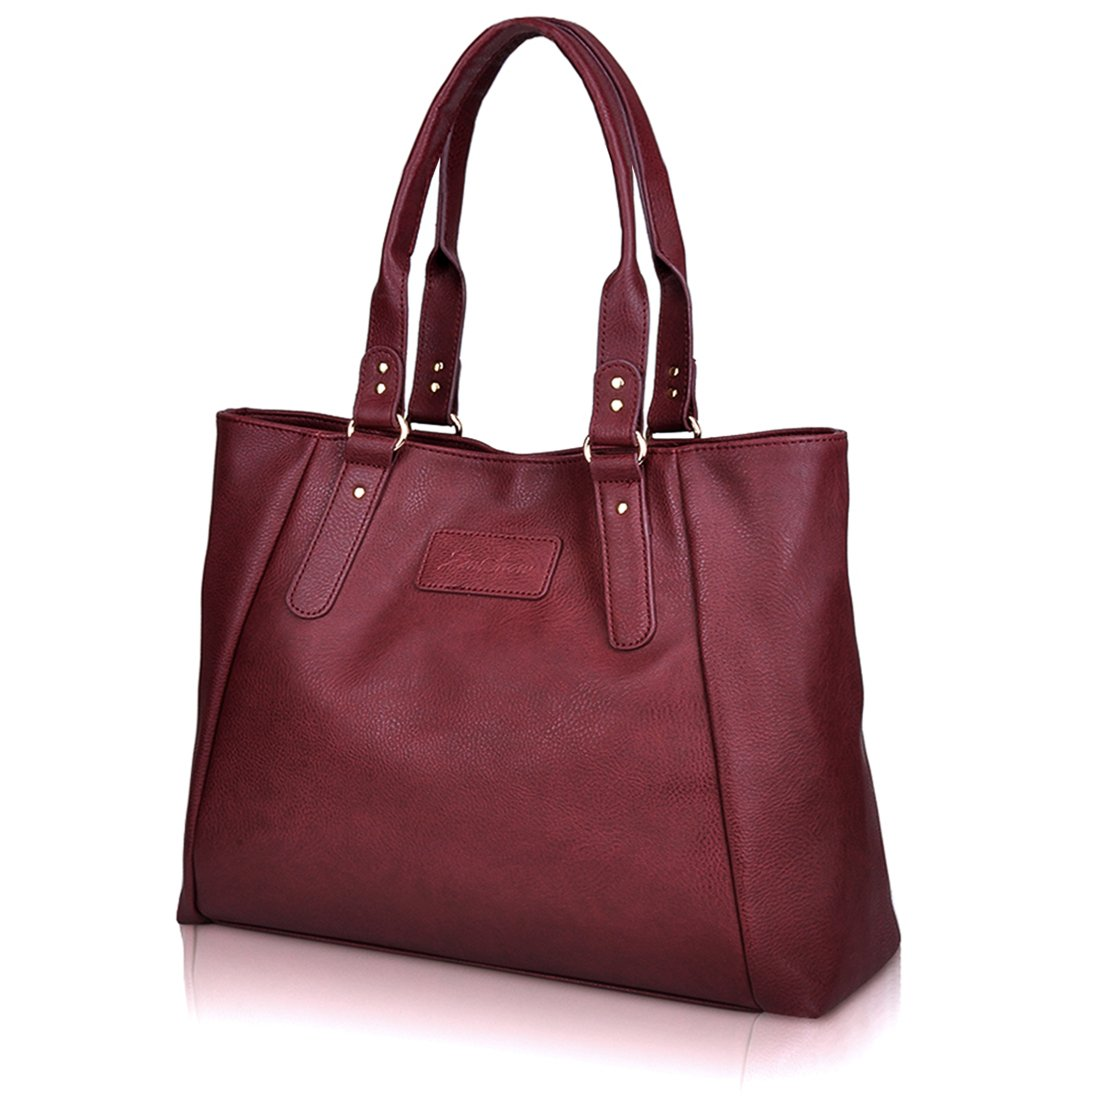 ZMSnow Women's PU Leather Handbags Lightweight Tote Casual Work Bag, 2-winered